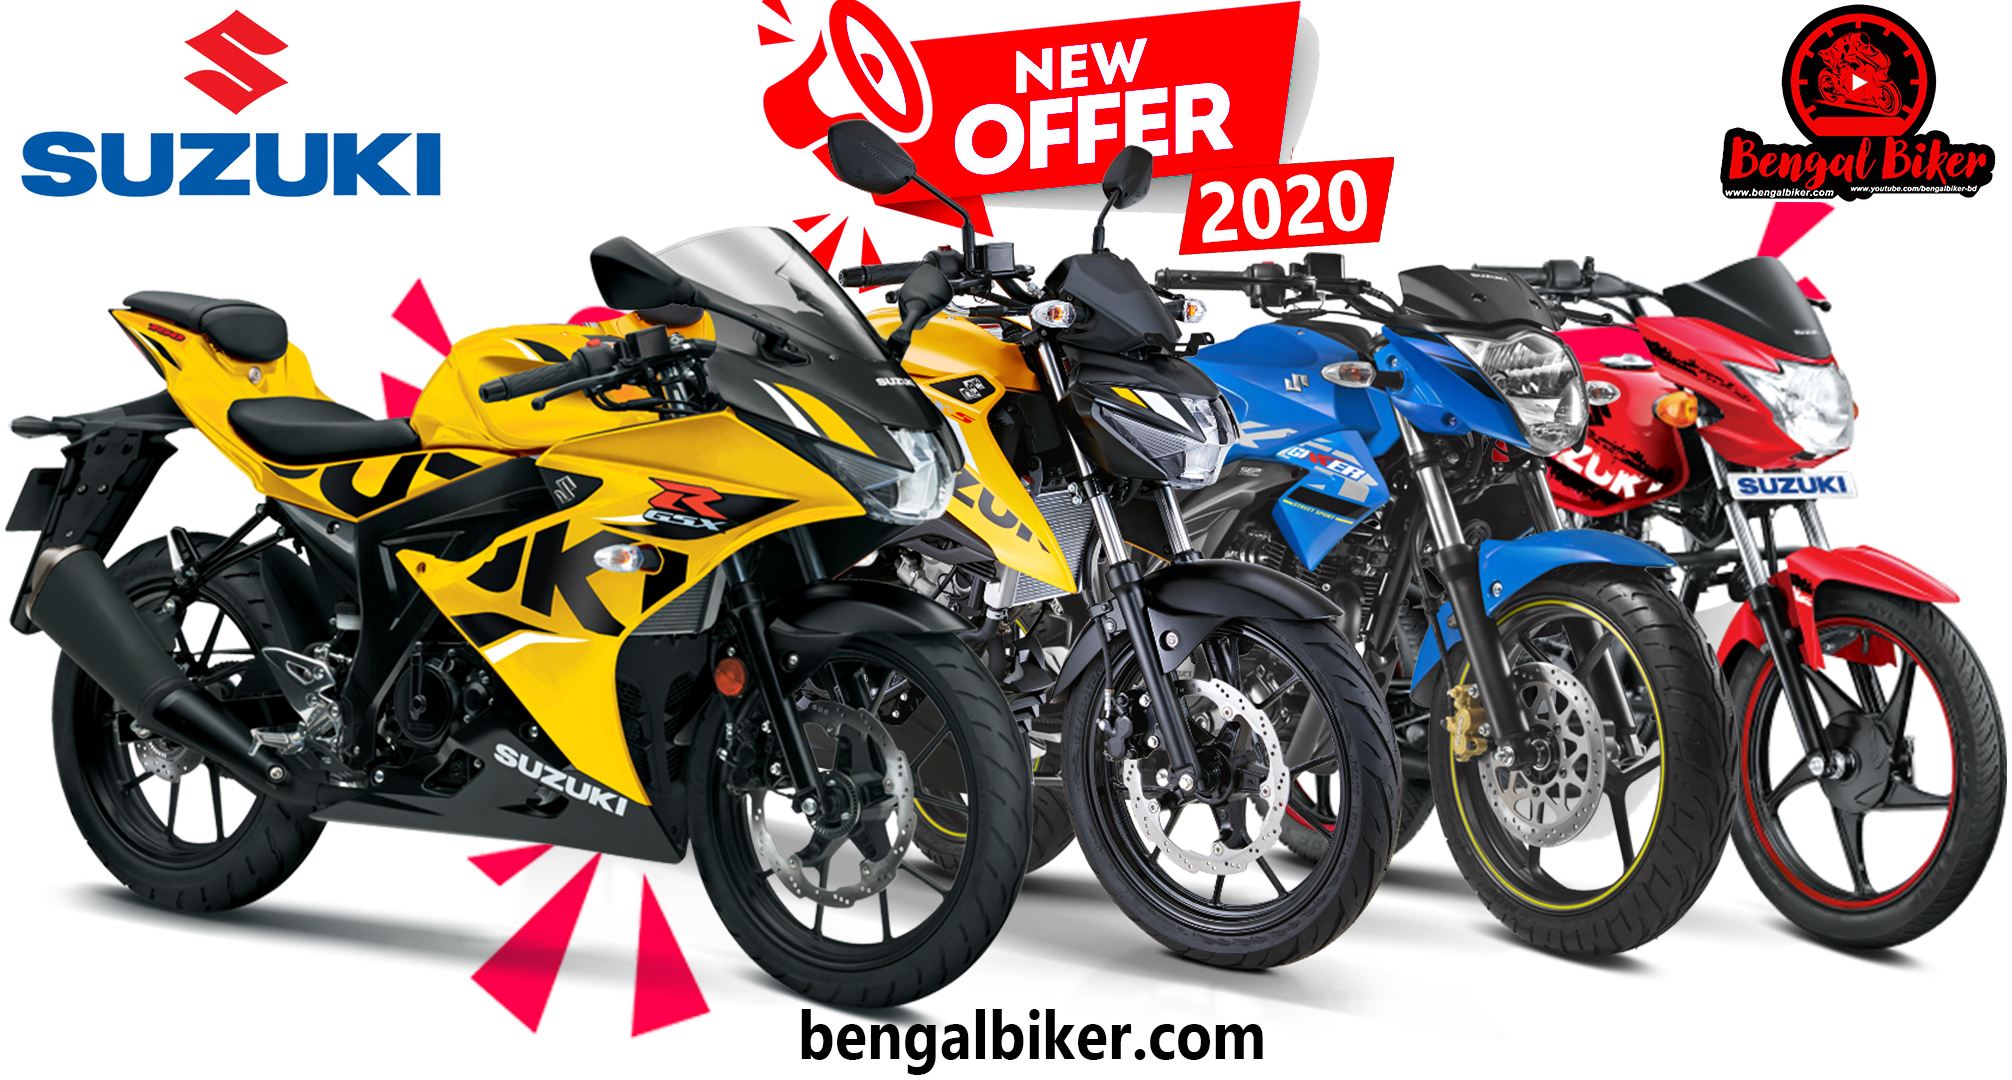 suzuki new offer 2020